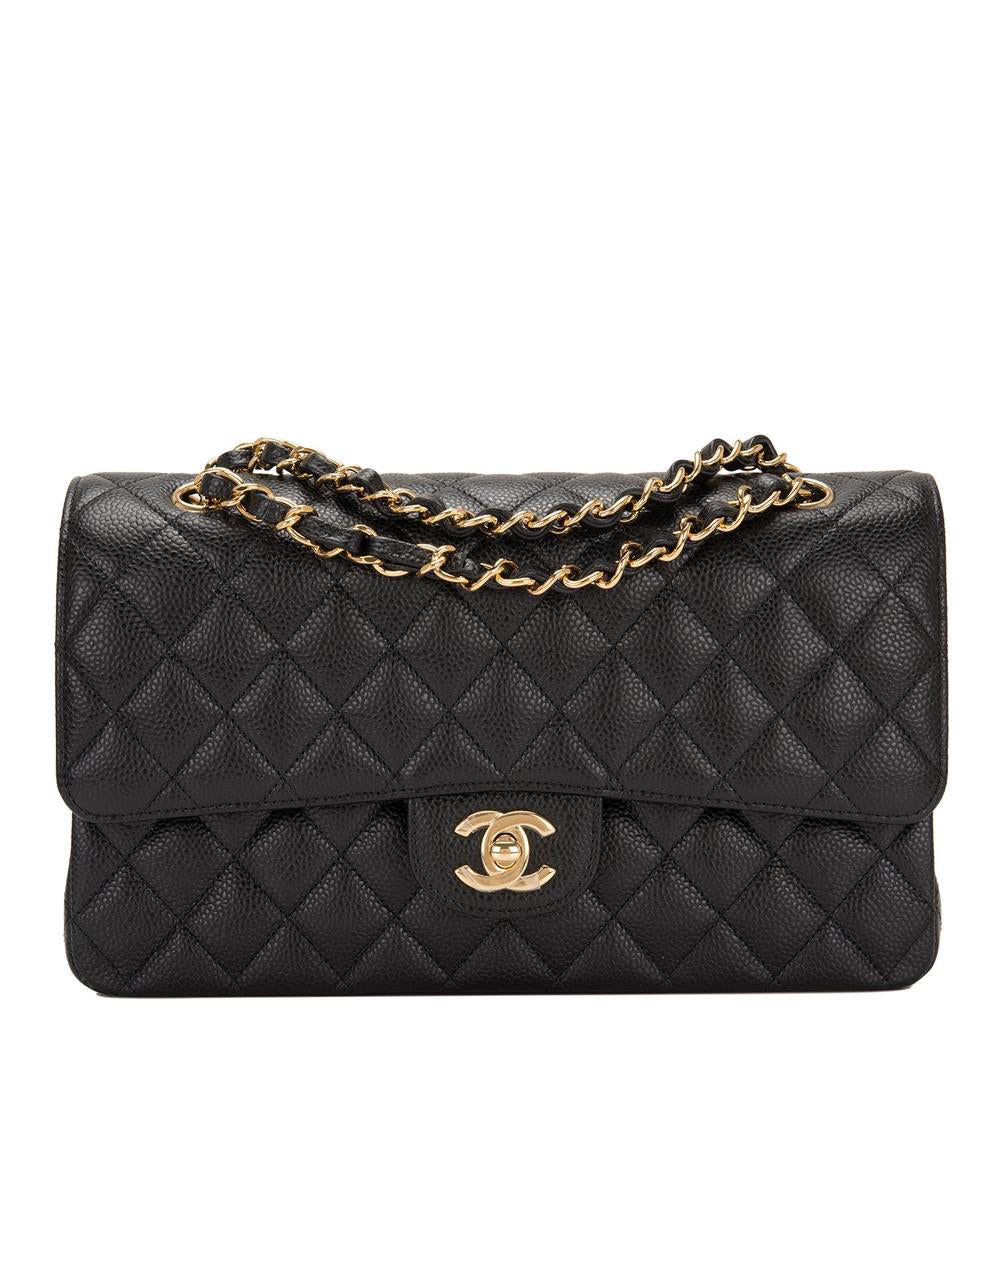 CHANEL CLASSIC MEDIUM DOUBLE FLAP BAG IN BLACK CAVIAR LEATHER (RENTAL)